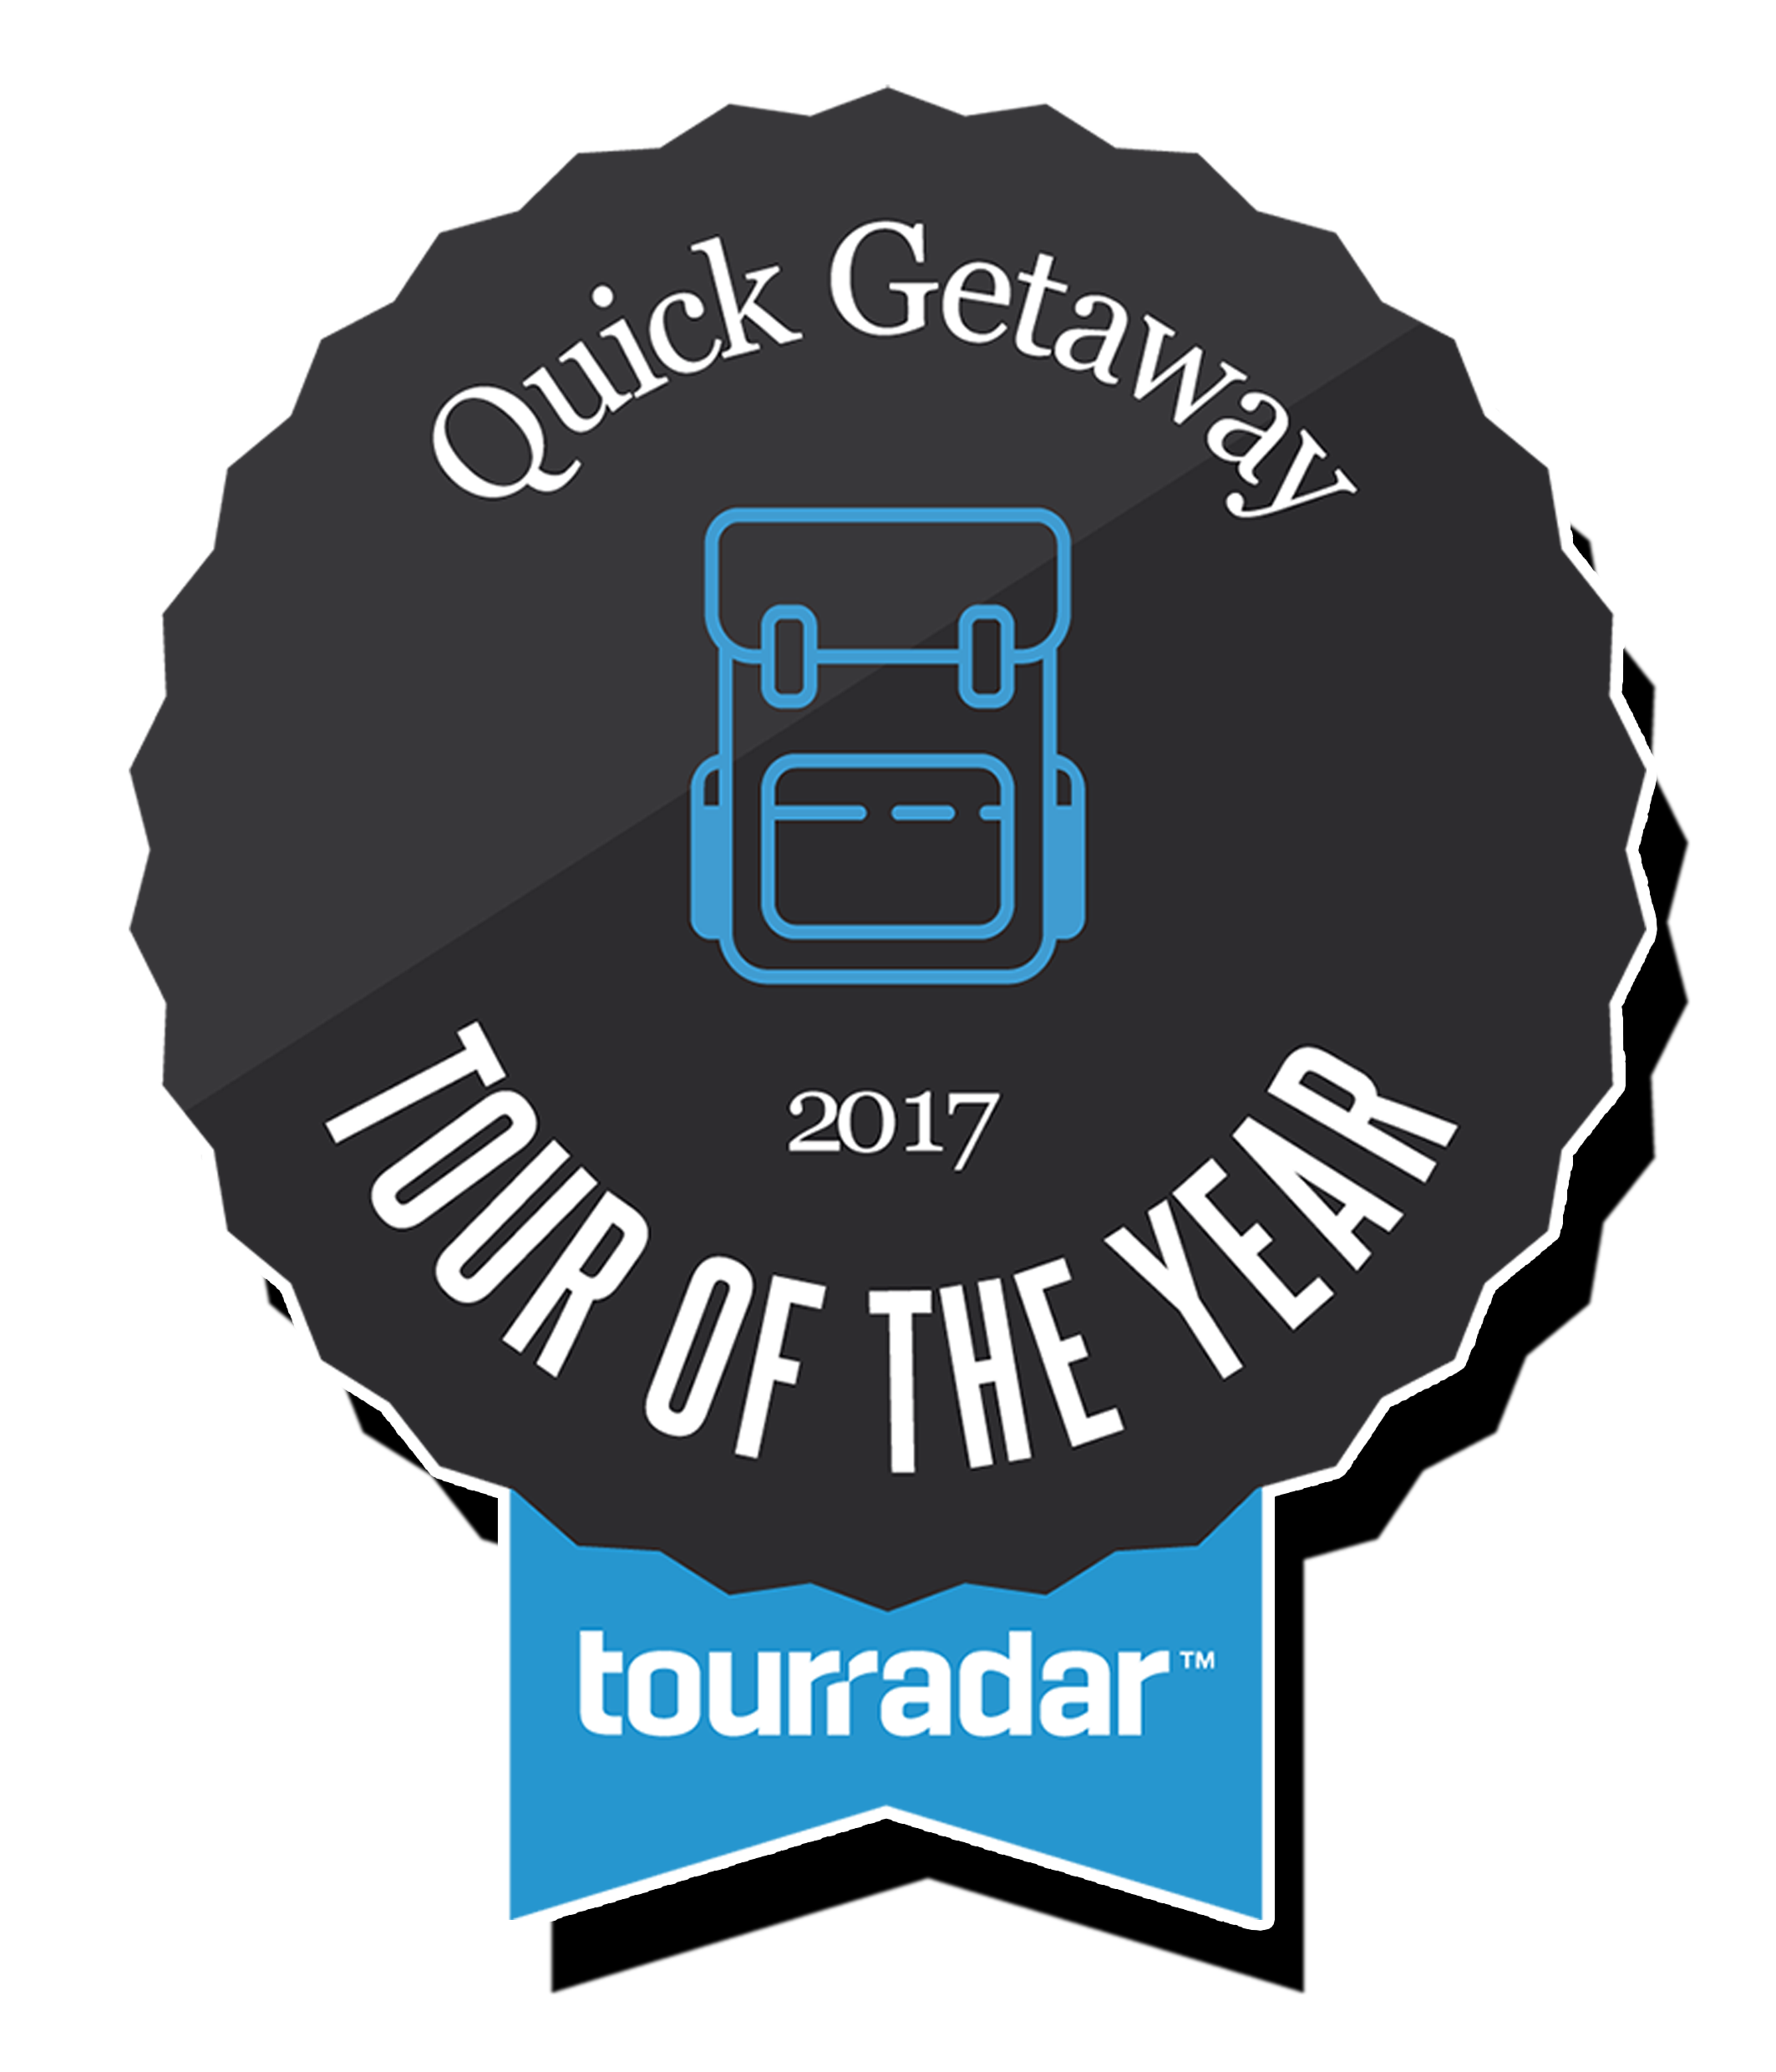 TOTY_Tour of the Year Winner TourRadar Best Quick Getaway tour